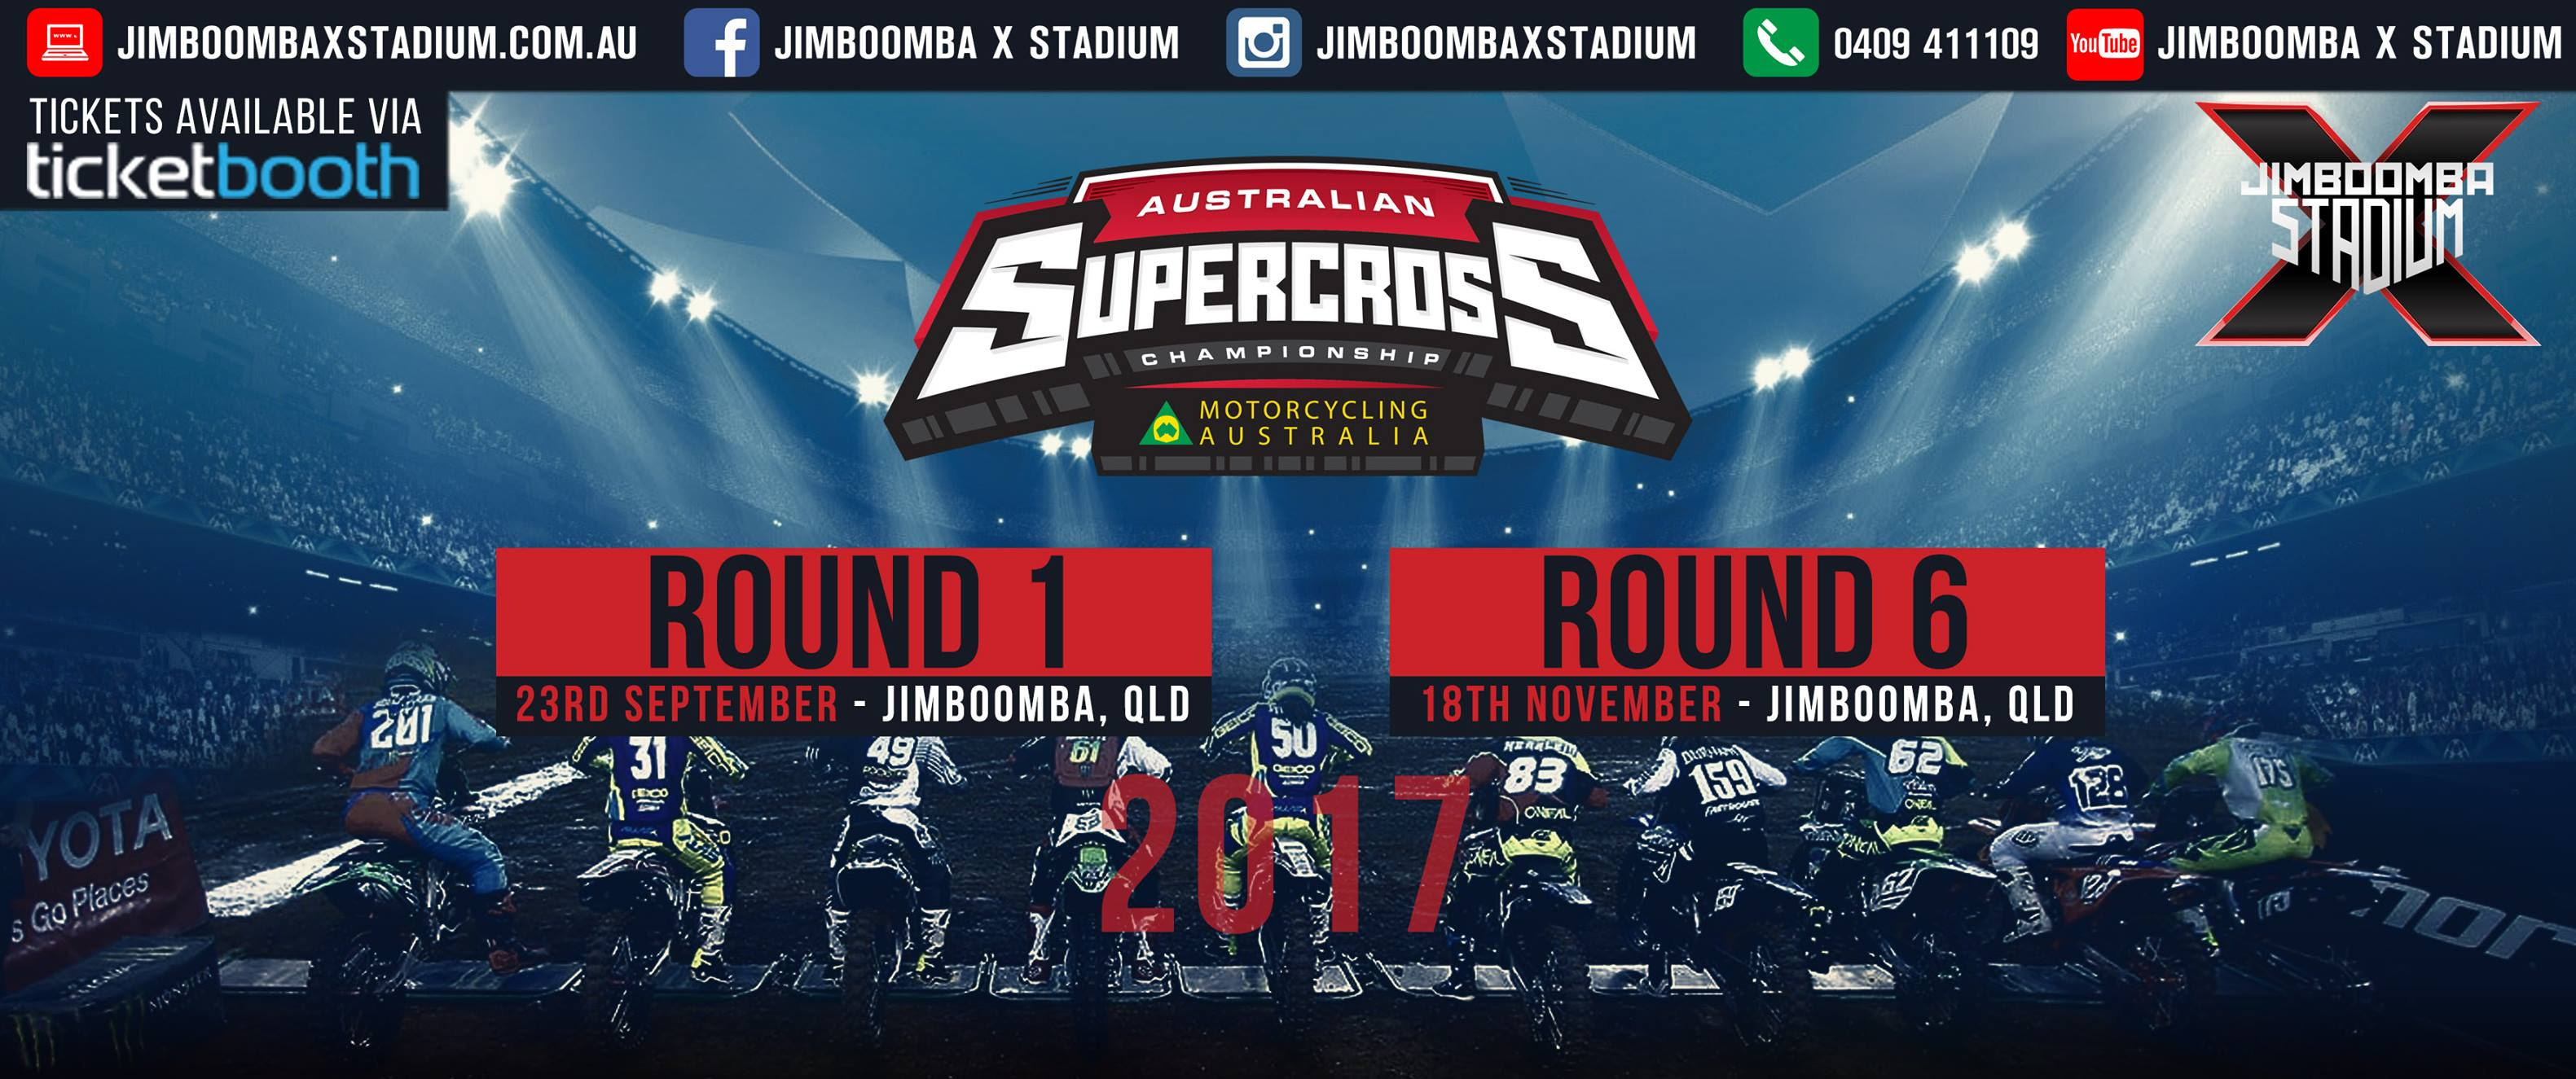 Tickets for 2017 Australian Supercross Championship: Round 1 Jimboomba in Jimboomba from Ticketbooth